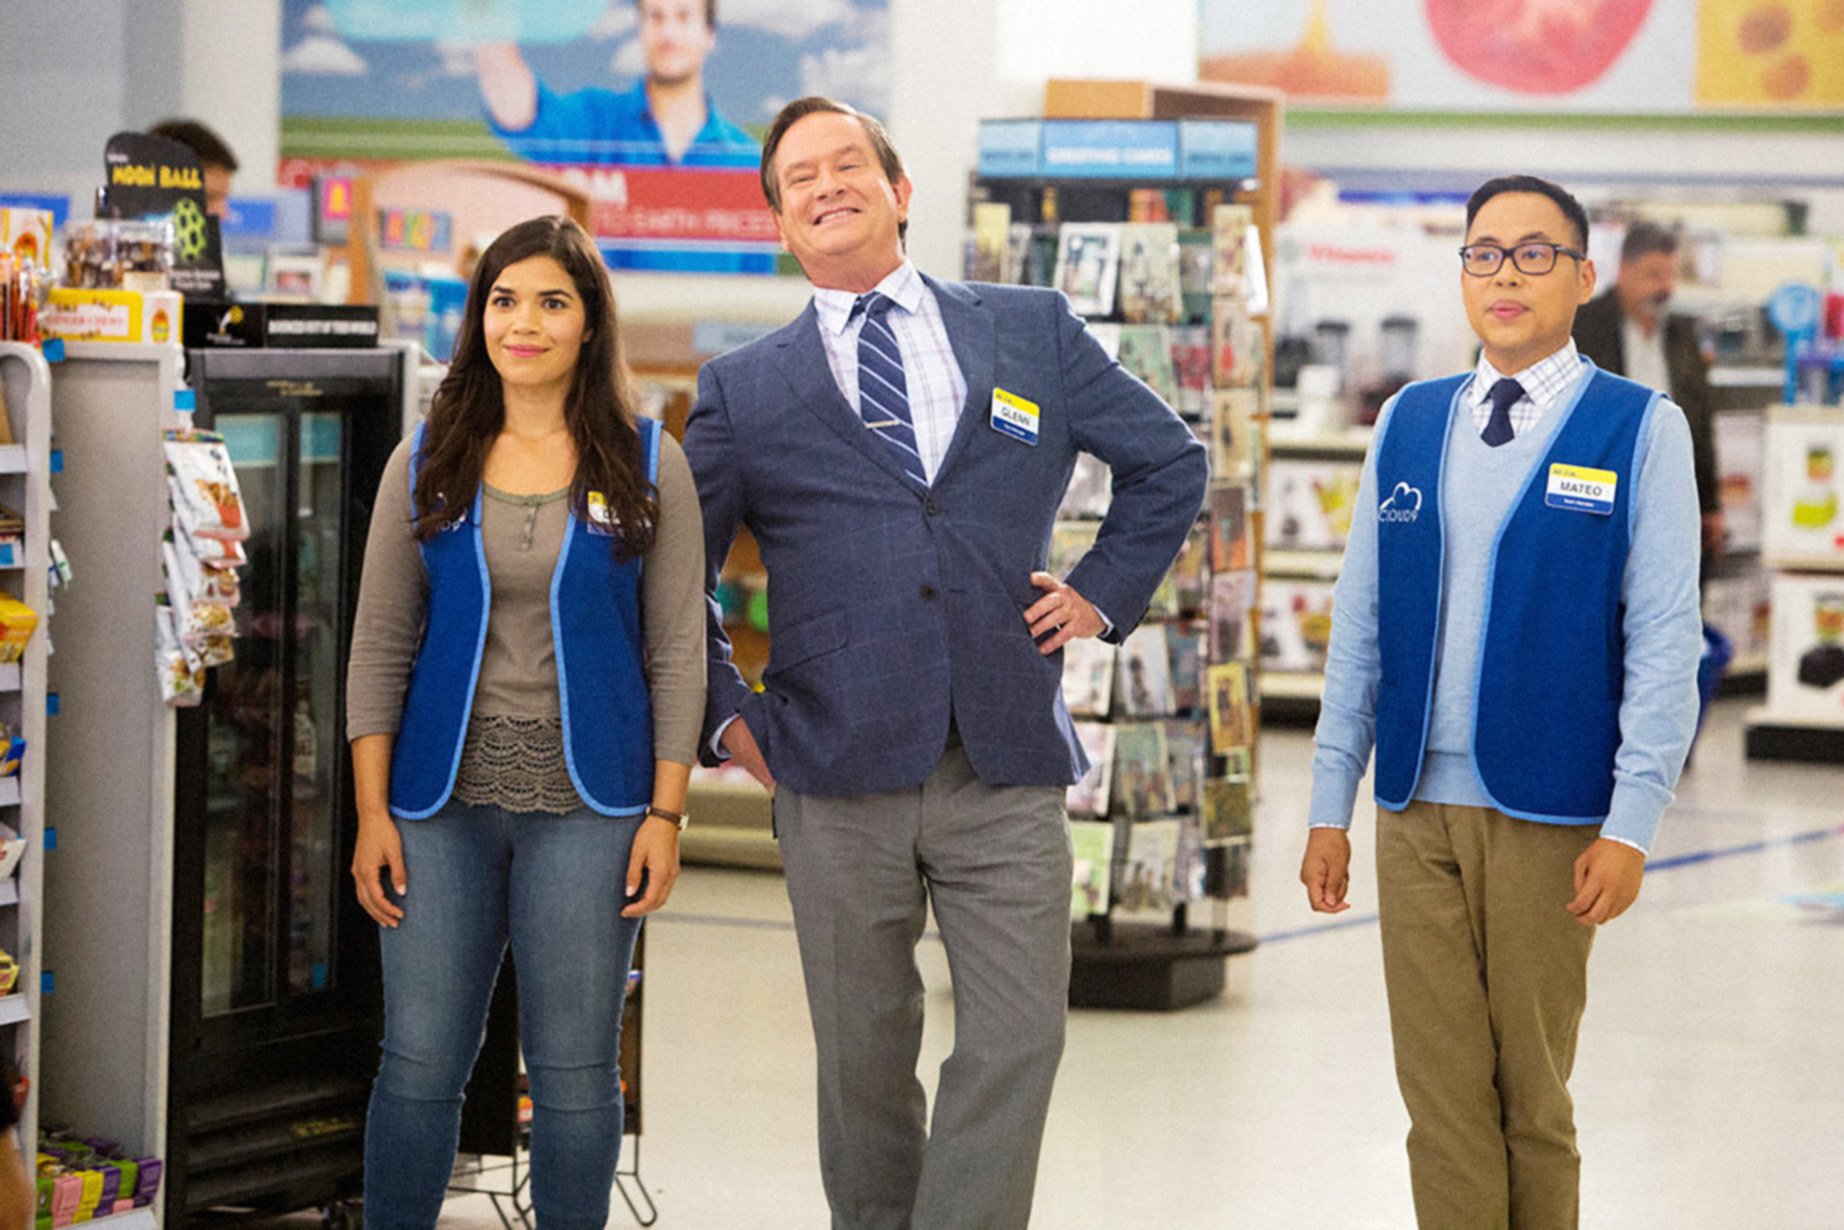 America Ferrera, Mark McKinney, and Nico Santos stand together in the aisle of their store